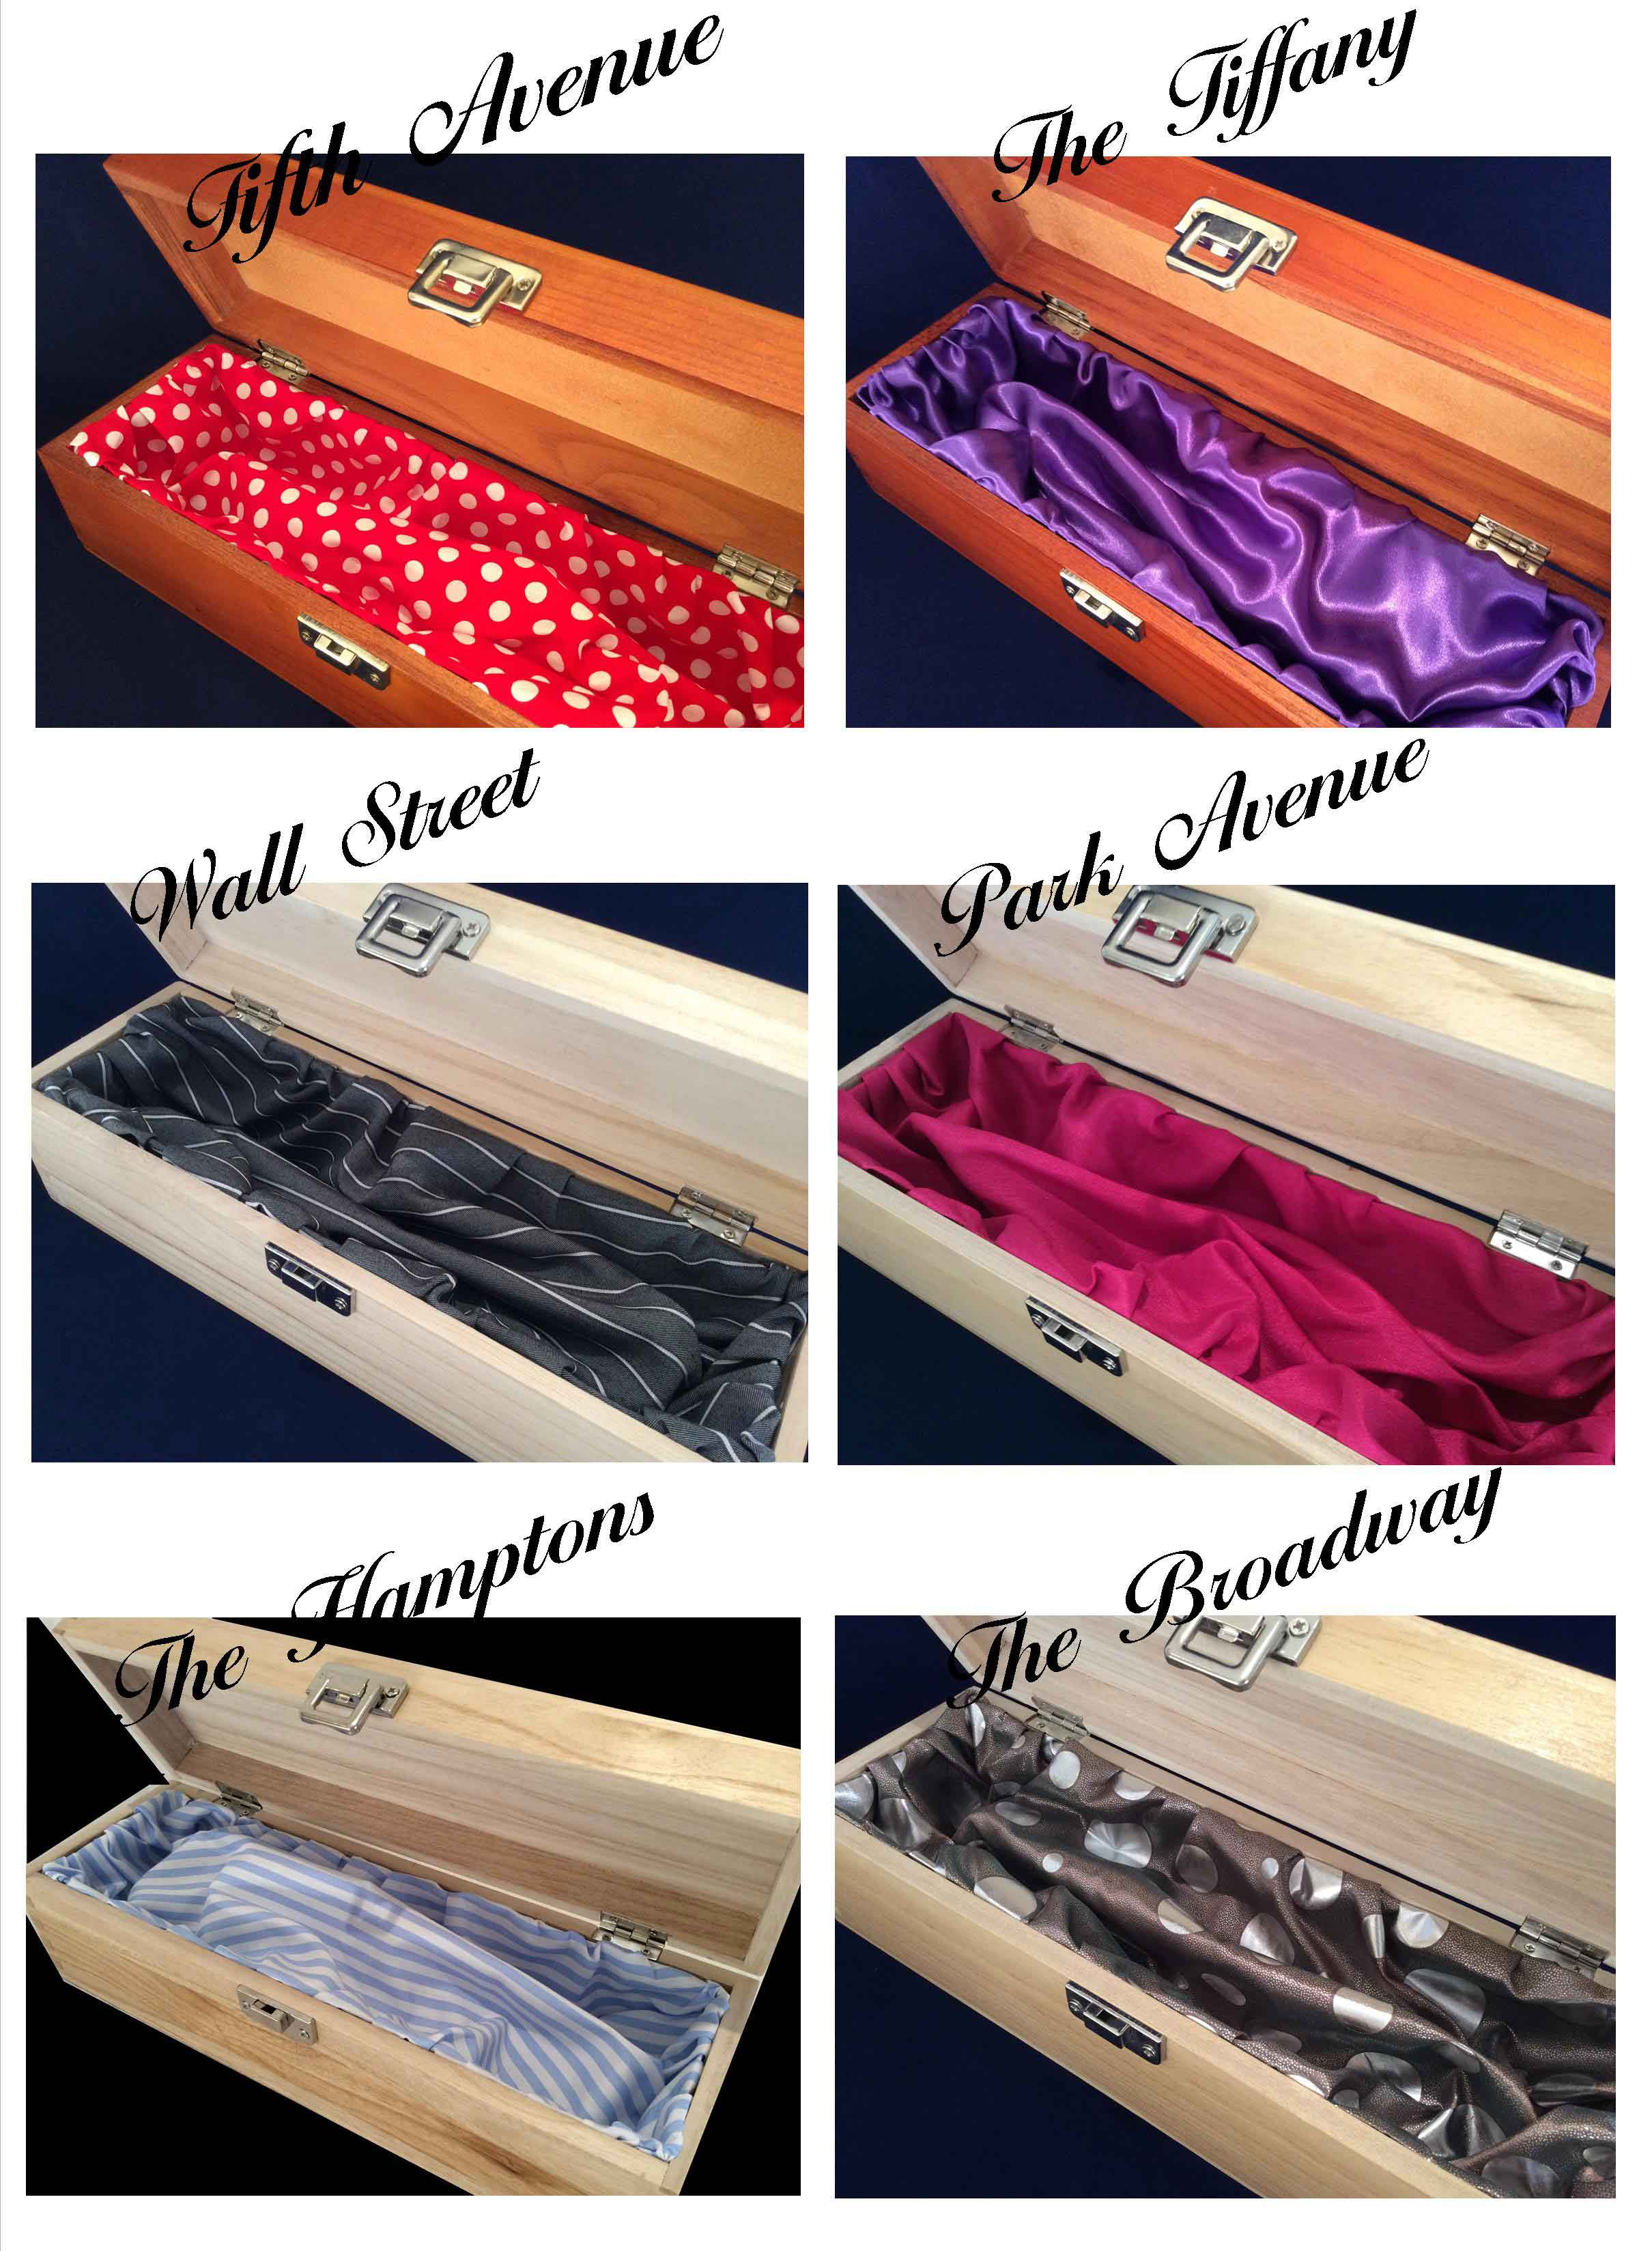 Finishing touches silk New York boxes a